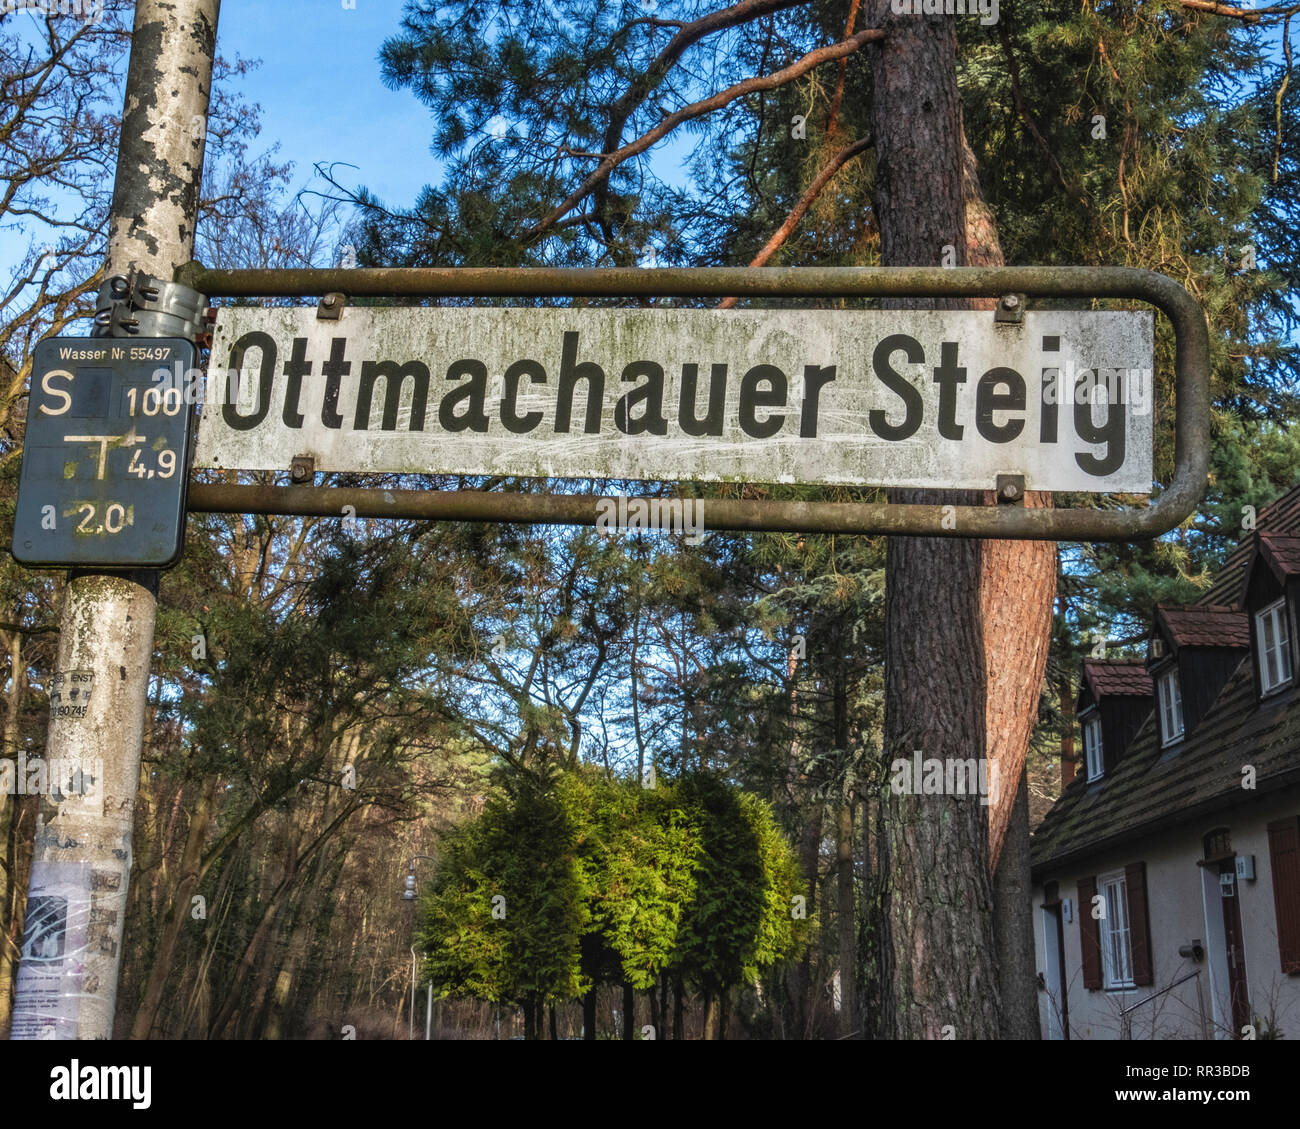 Krumme Lanke, Berlin, Germany. Ottmachauer Steig Street sign - Stock Image